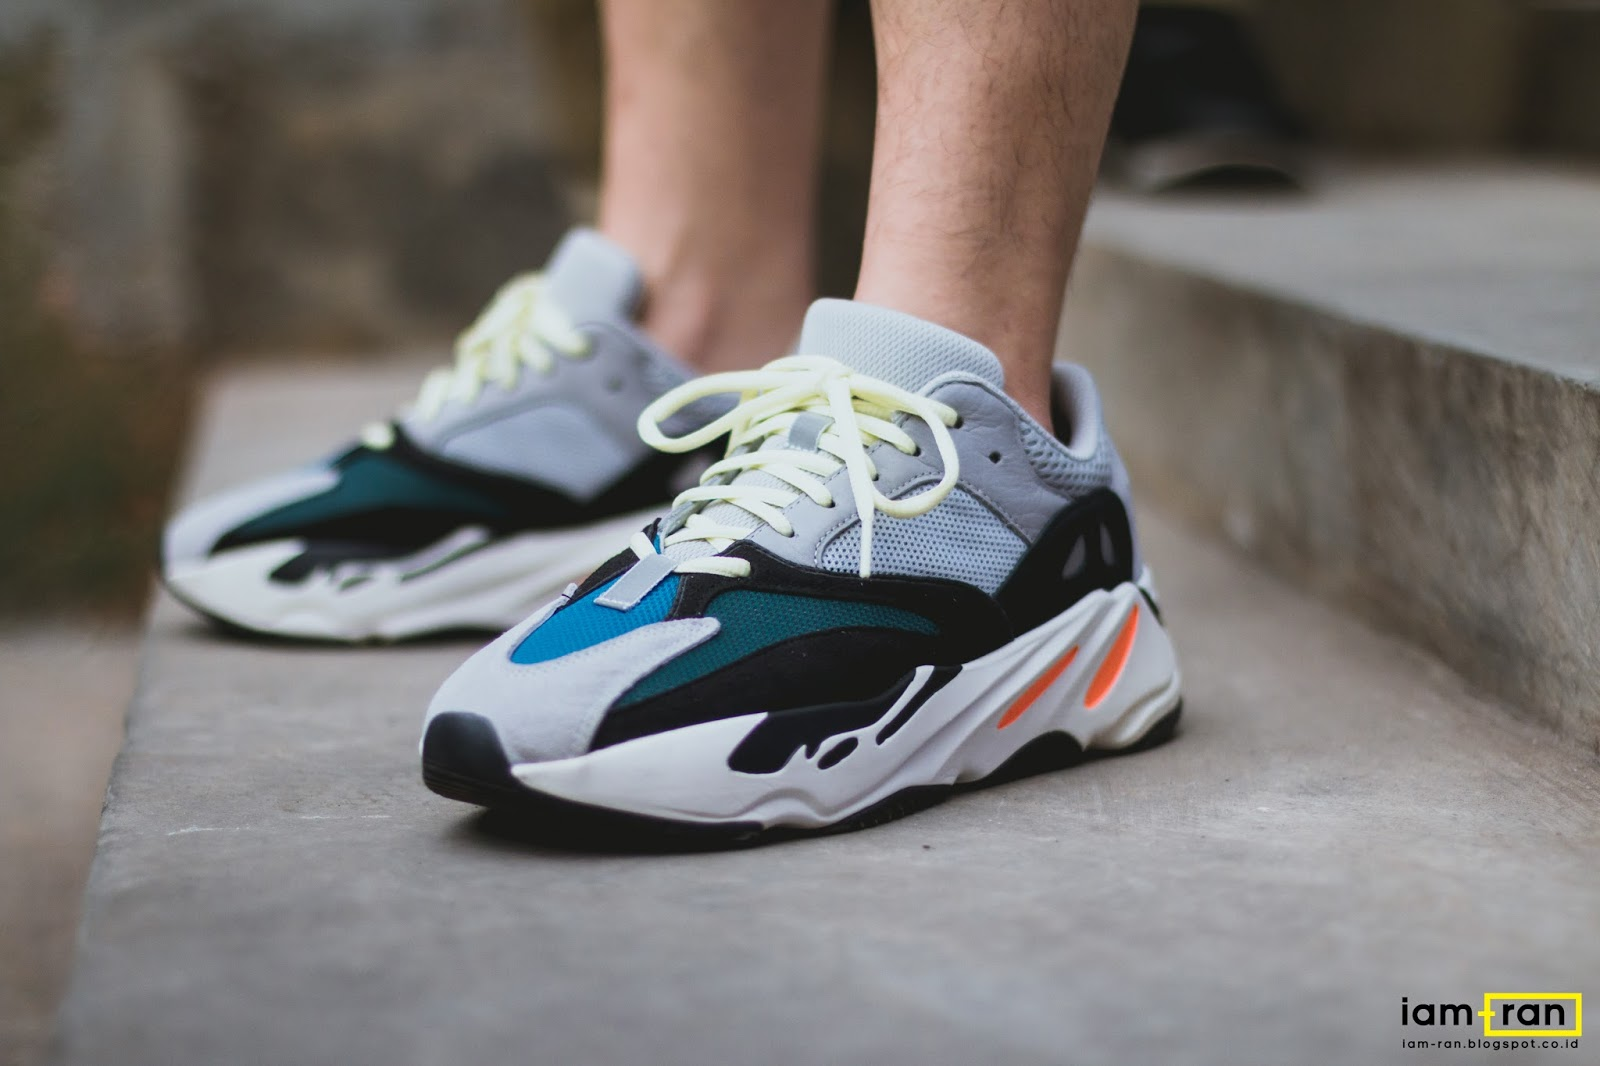 low priced ae064 3e823 IAM-RAN: ON FEET : Dimas indro - Adidas Yeezy 700